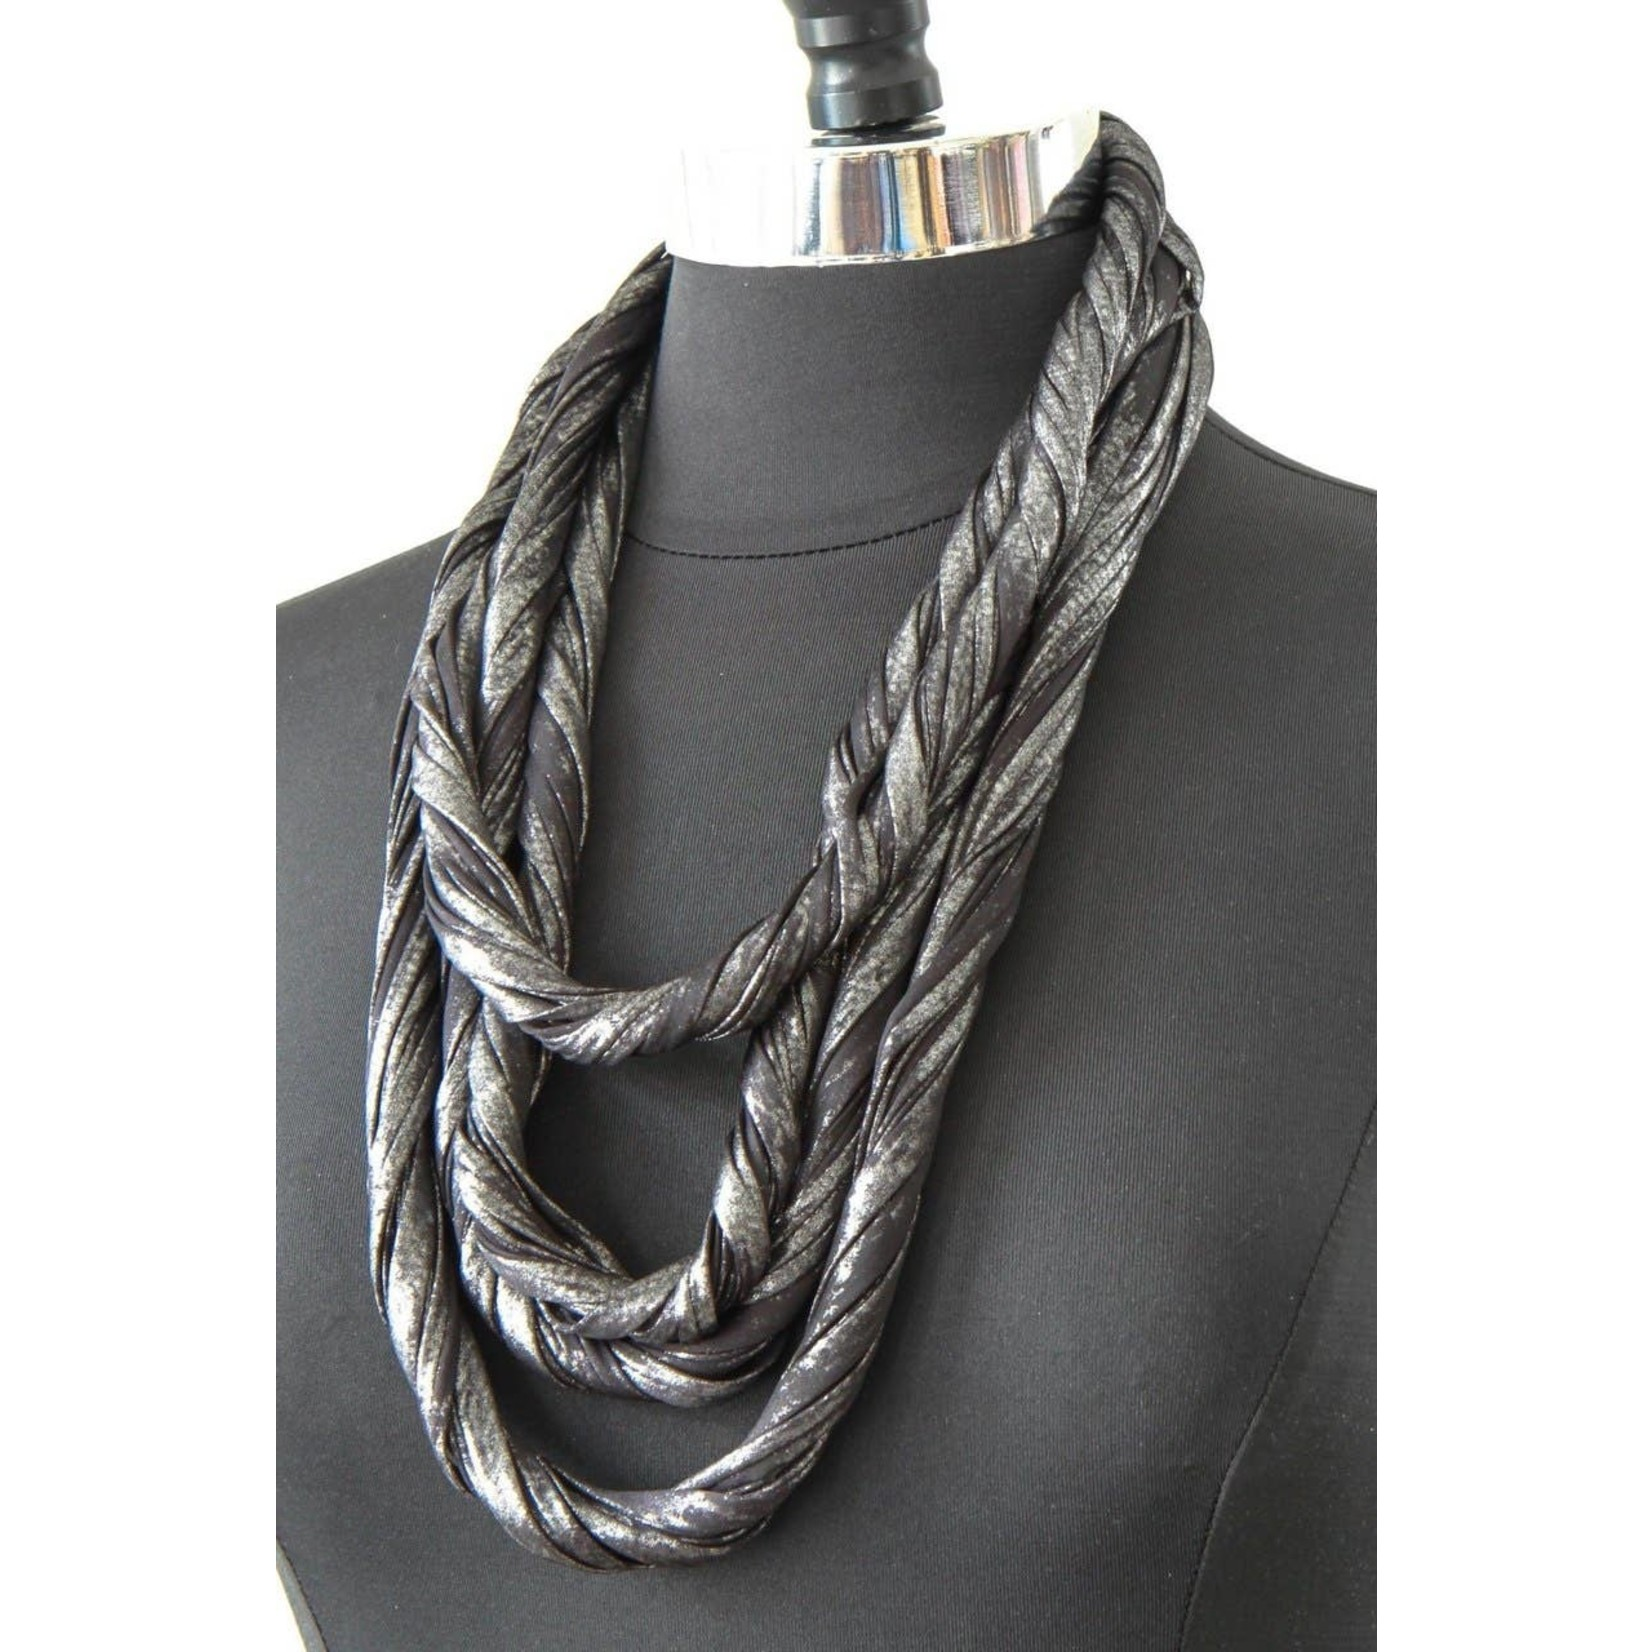 Necknots Oxi Metallic Black and Silver Infinity Scarf Necklace